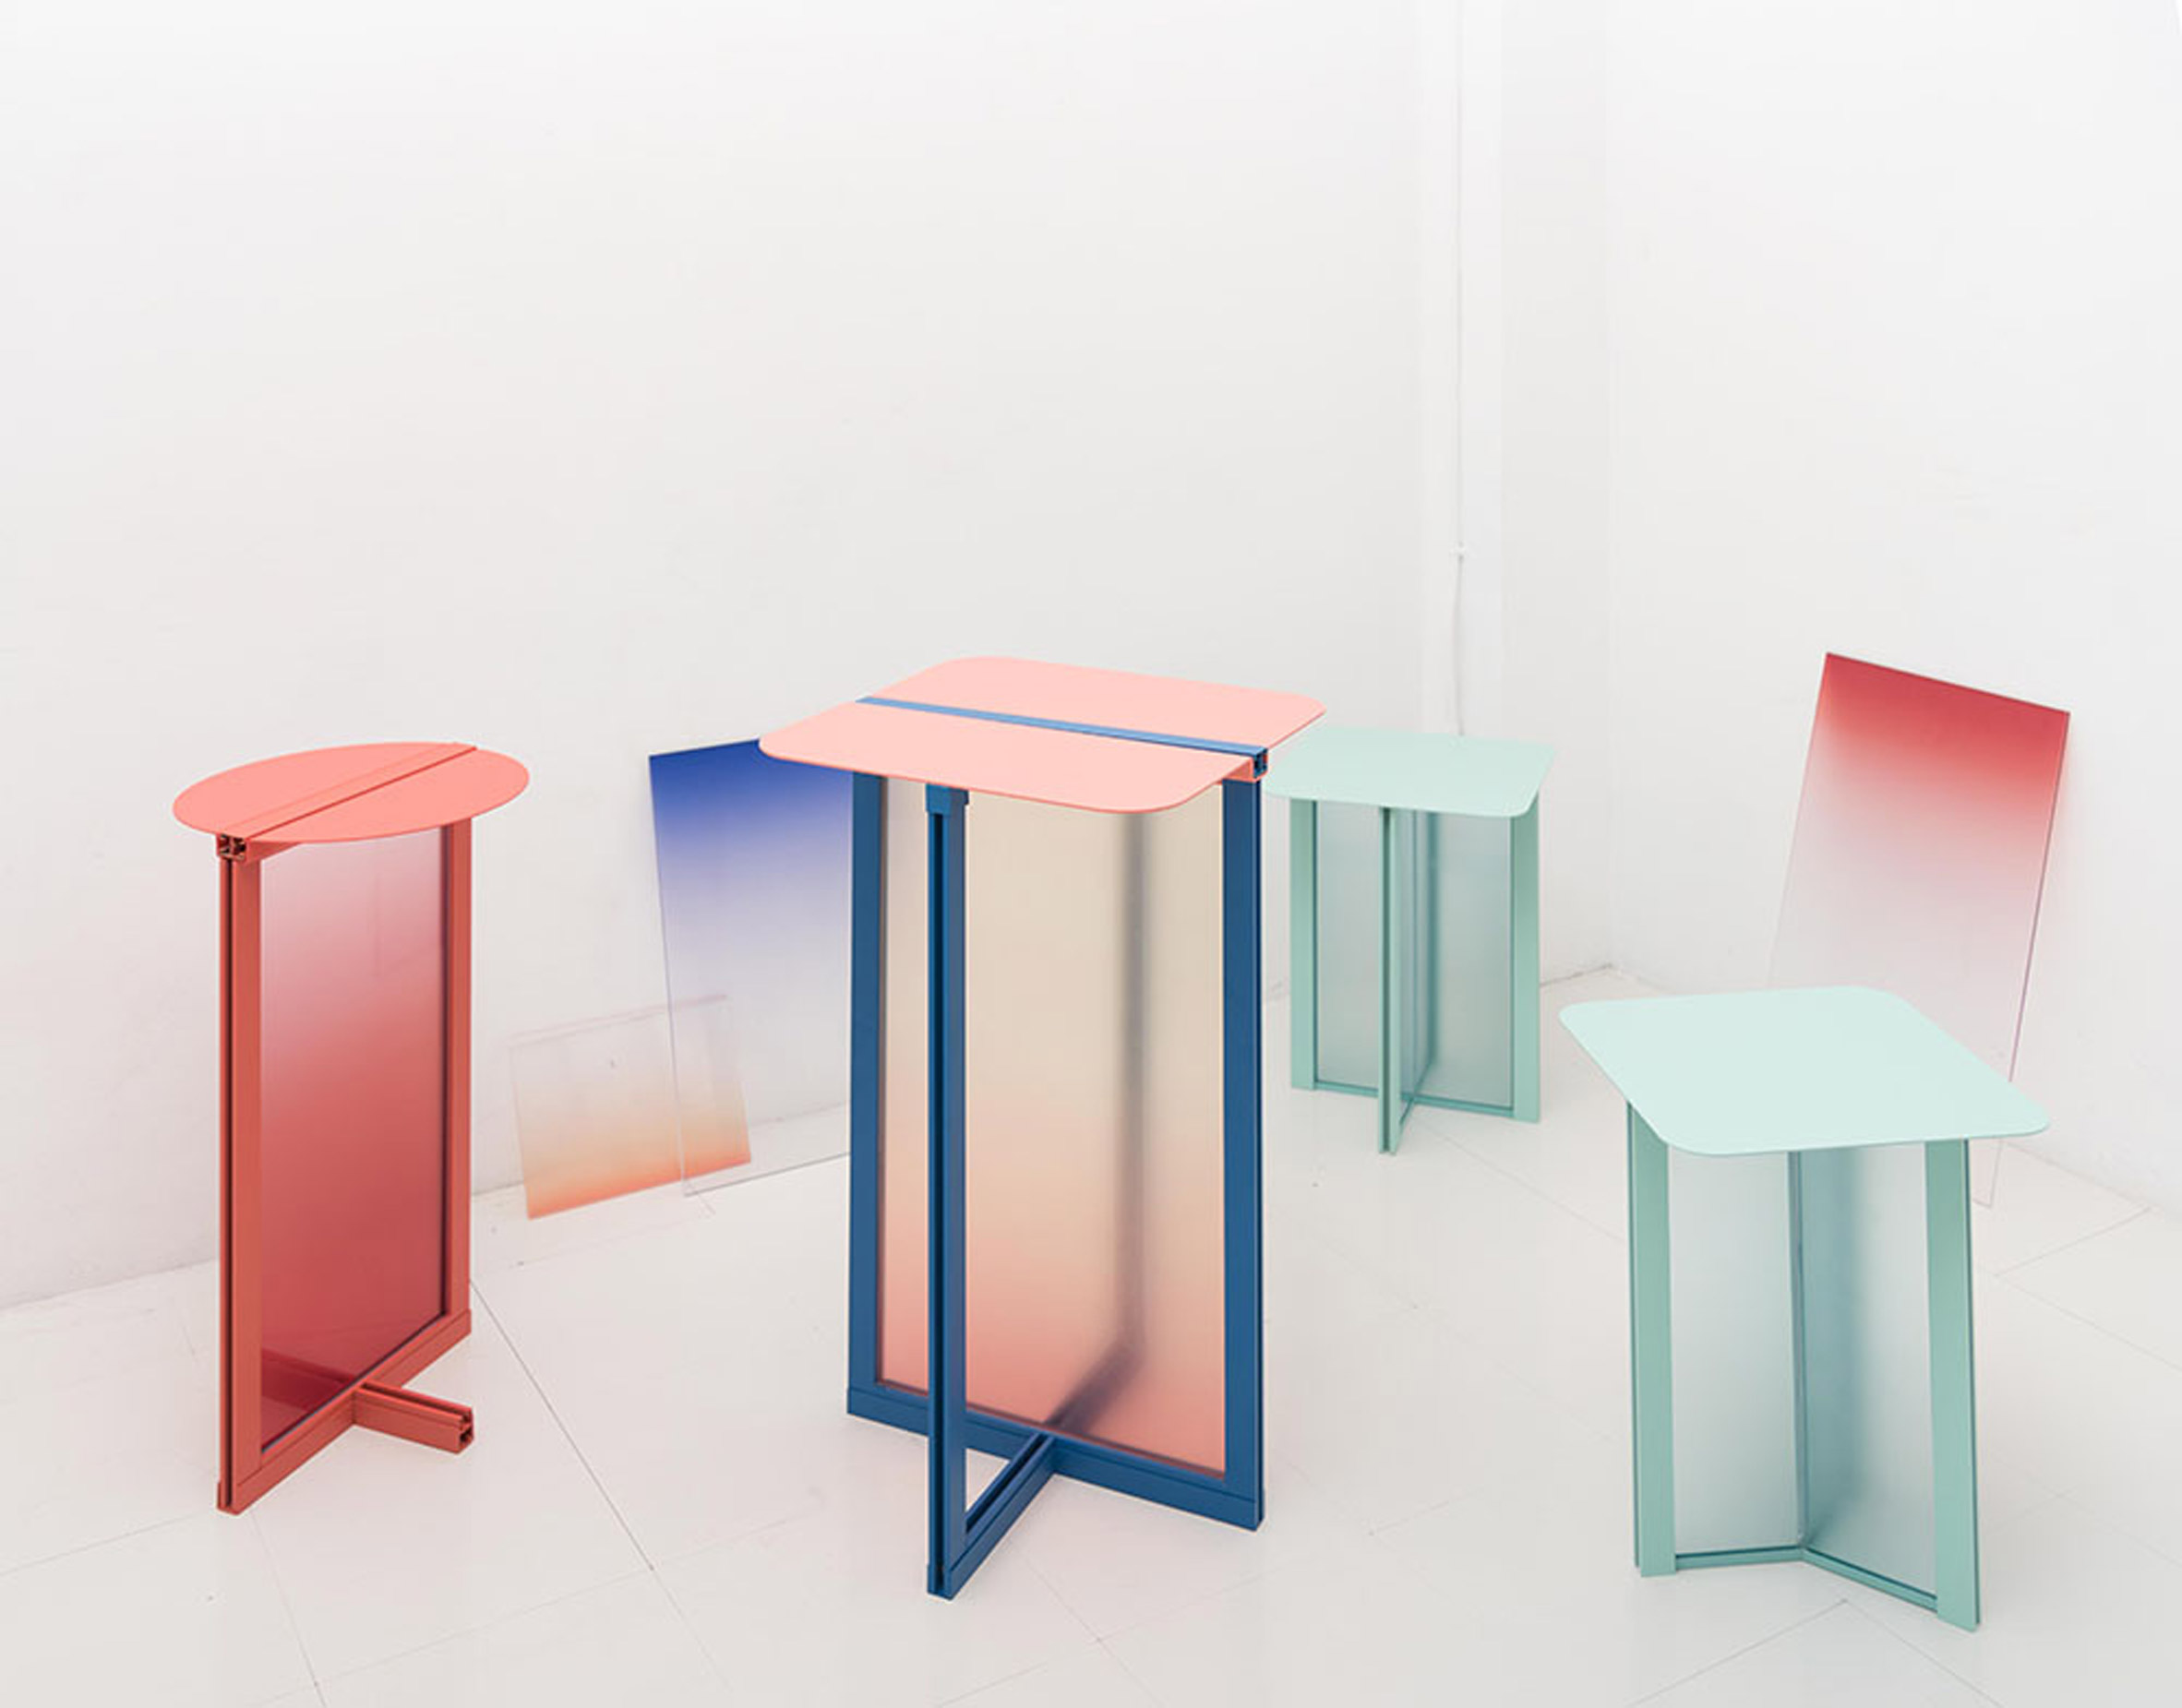 Femme Atelier reimagines the doorframe as collection of ombre furniture